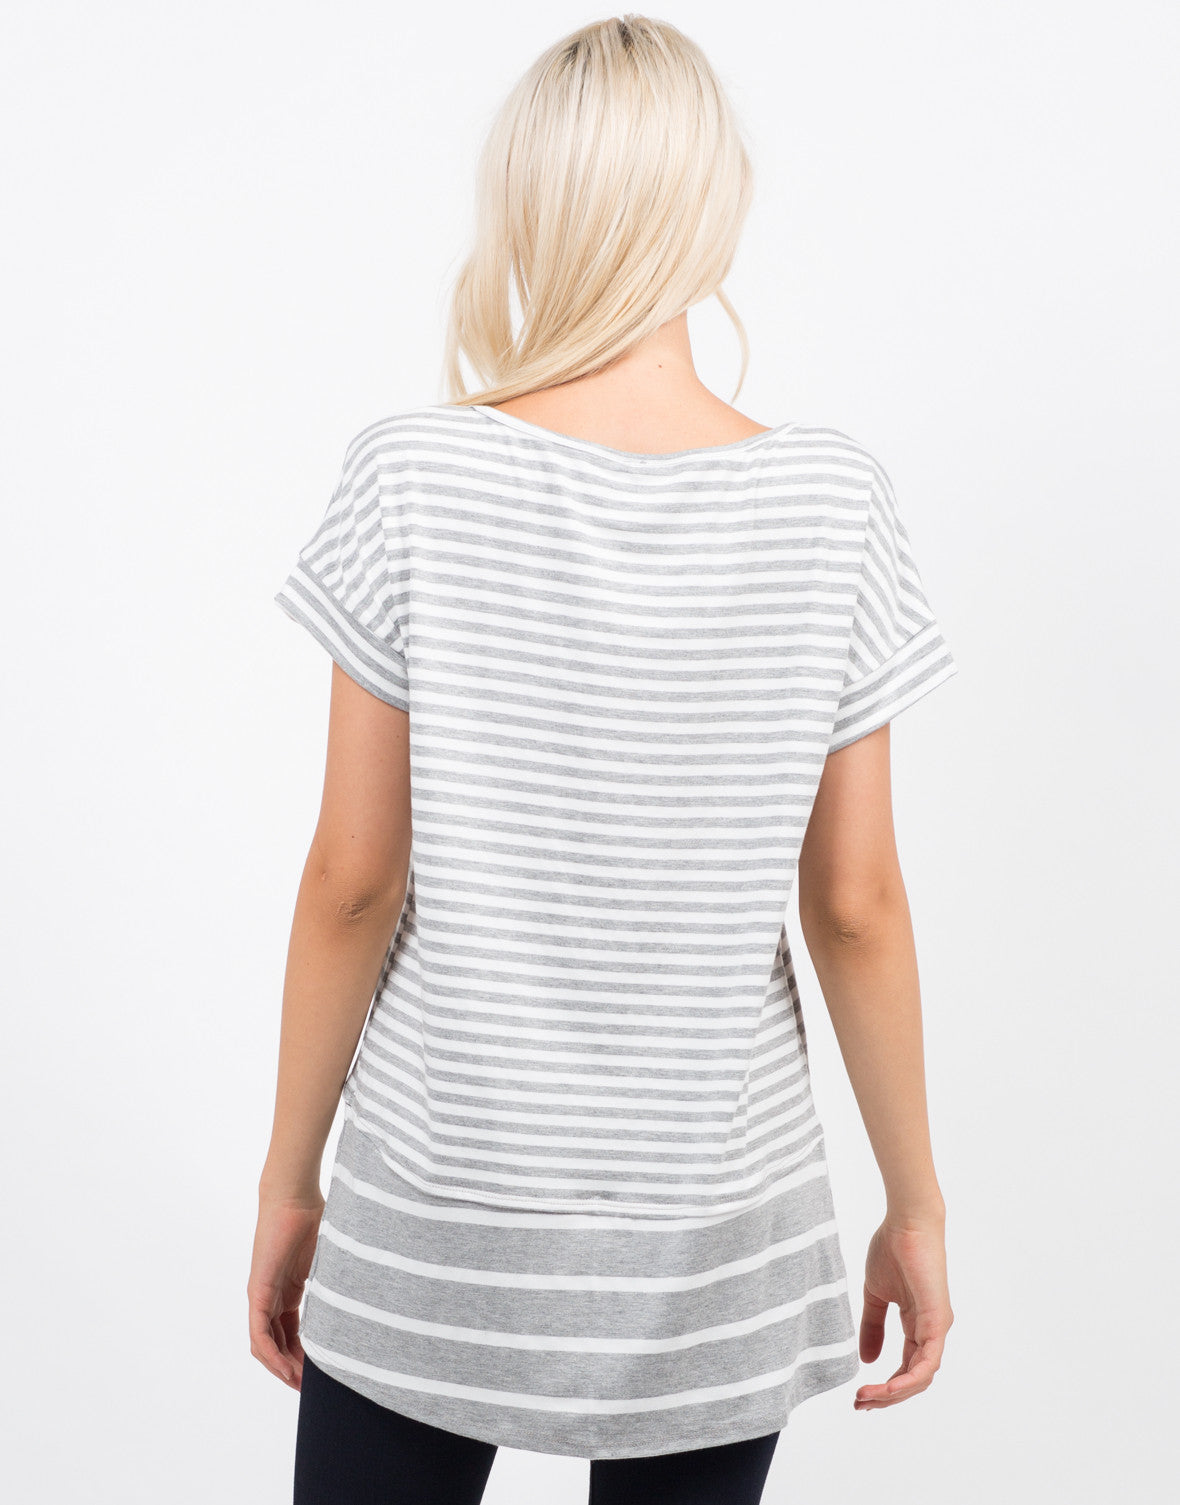 Back View of Oversized Striped Tee